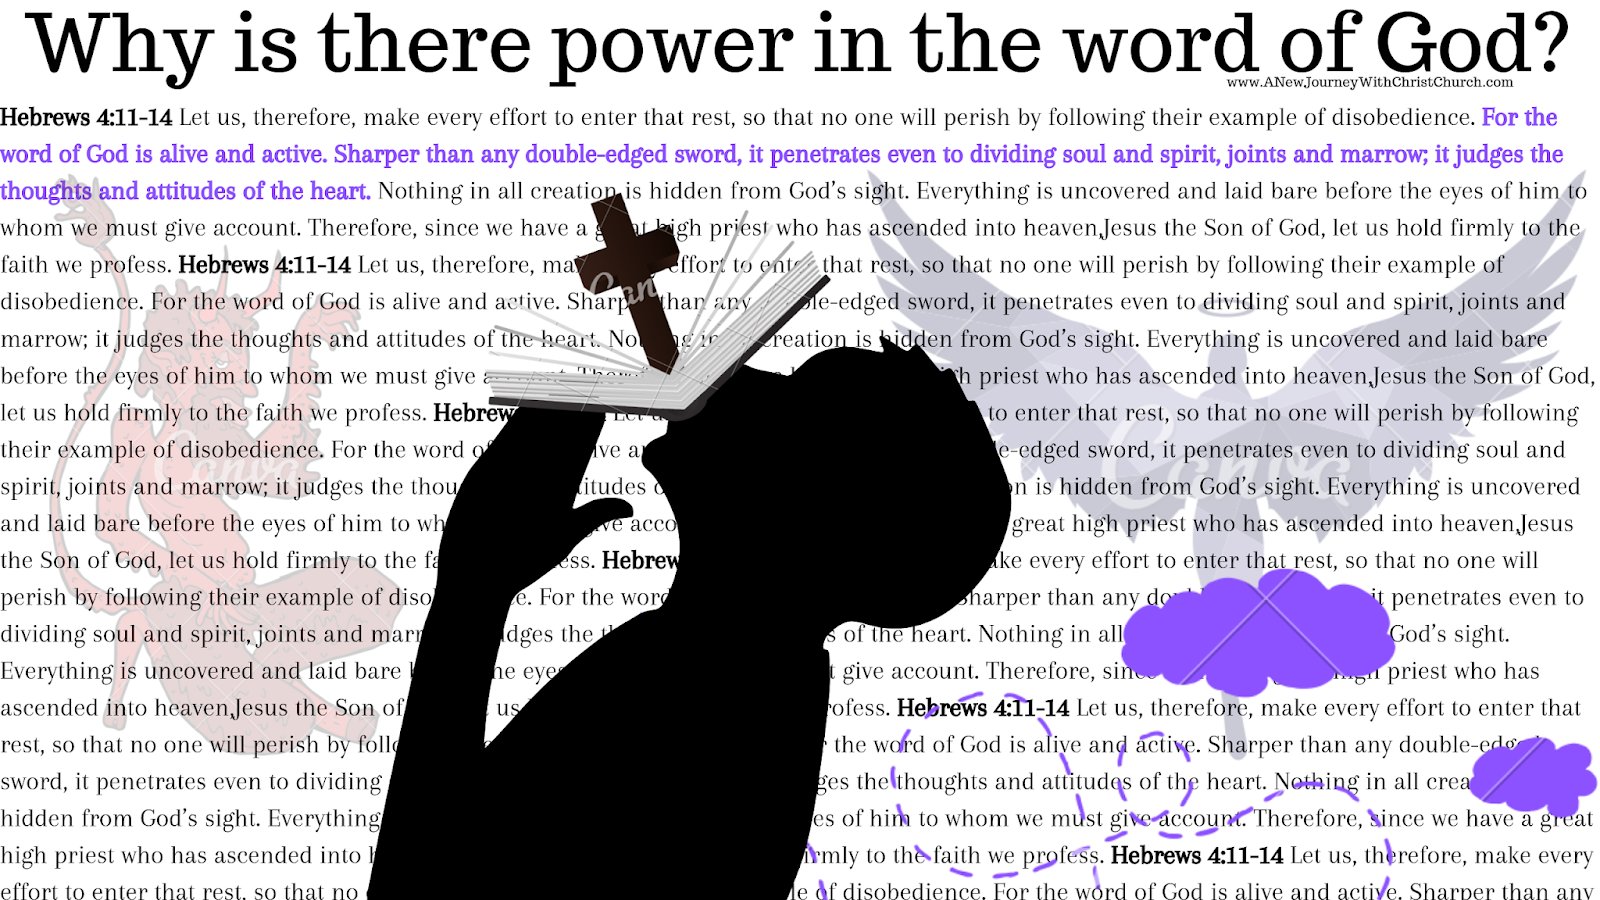 Why is there power in the word of God?